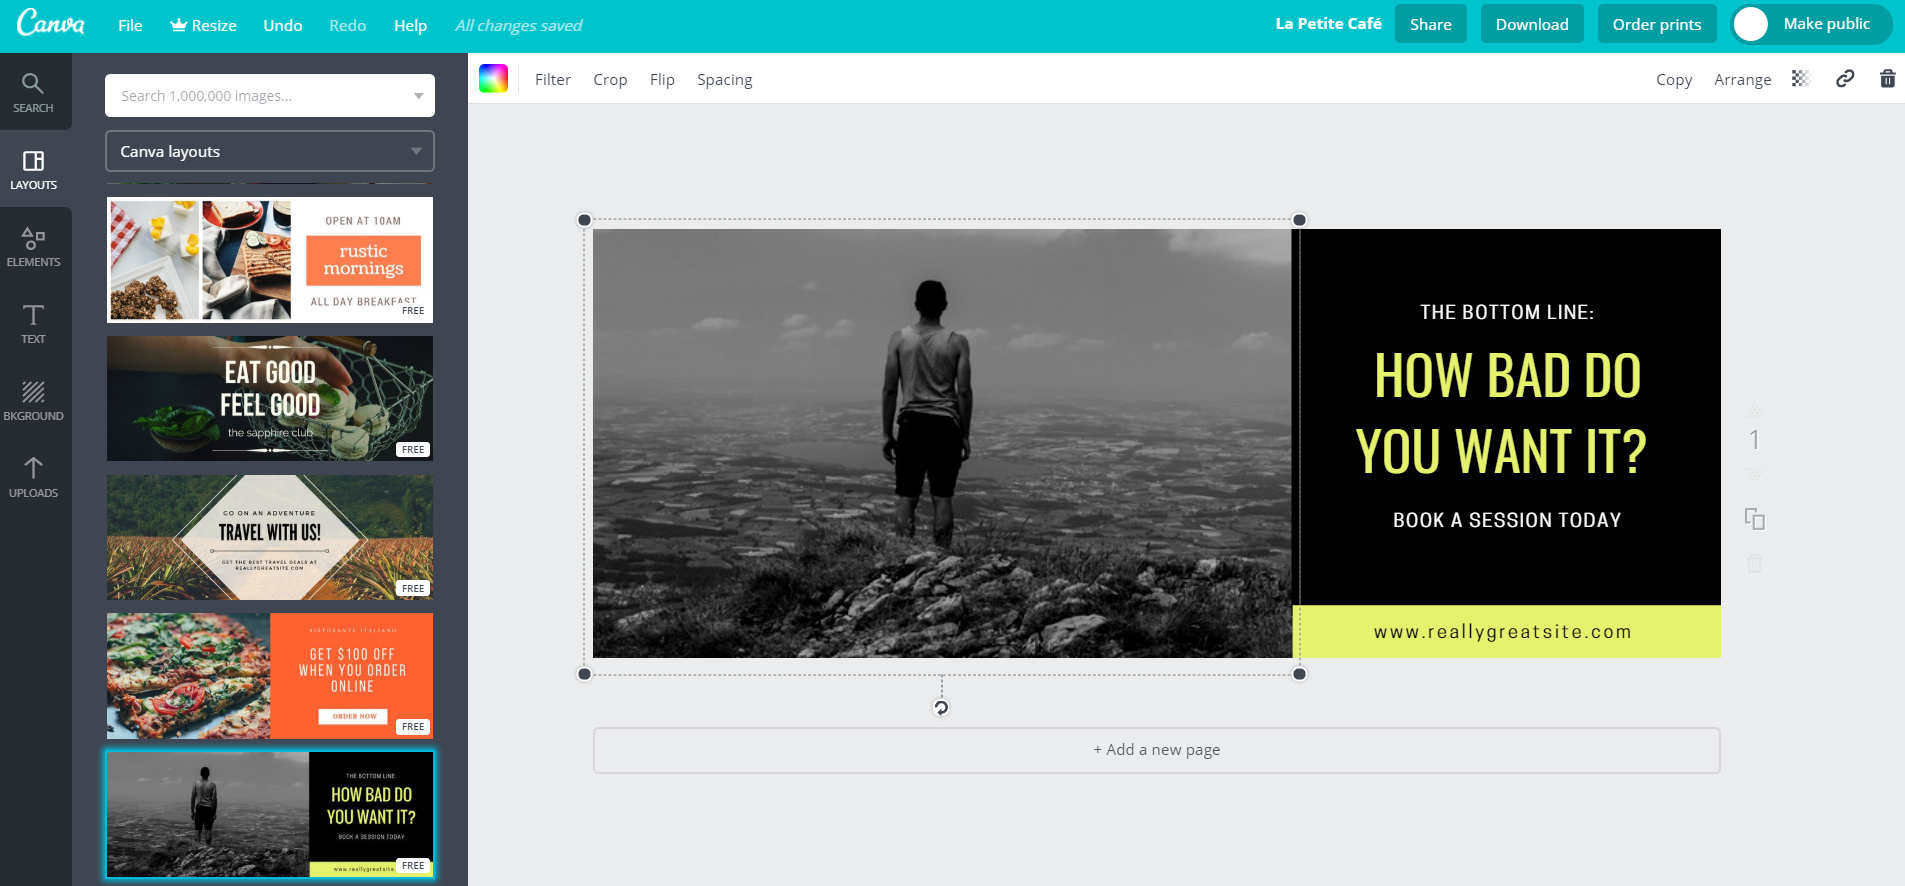 Tools like Canva allow you to whip up optimized social images in no time flat